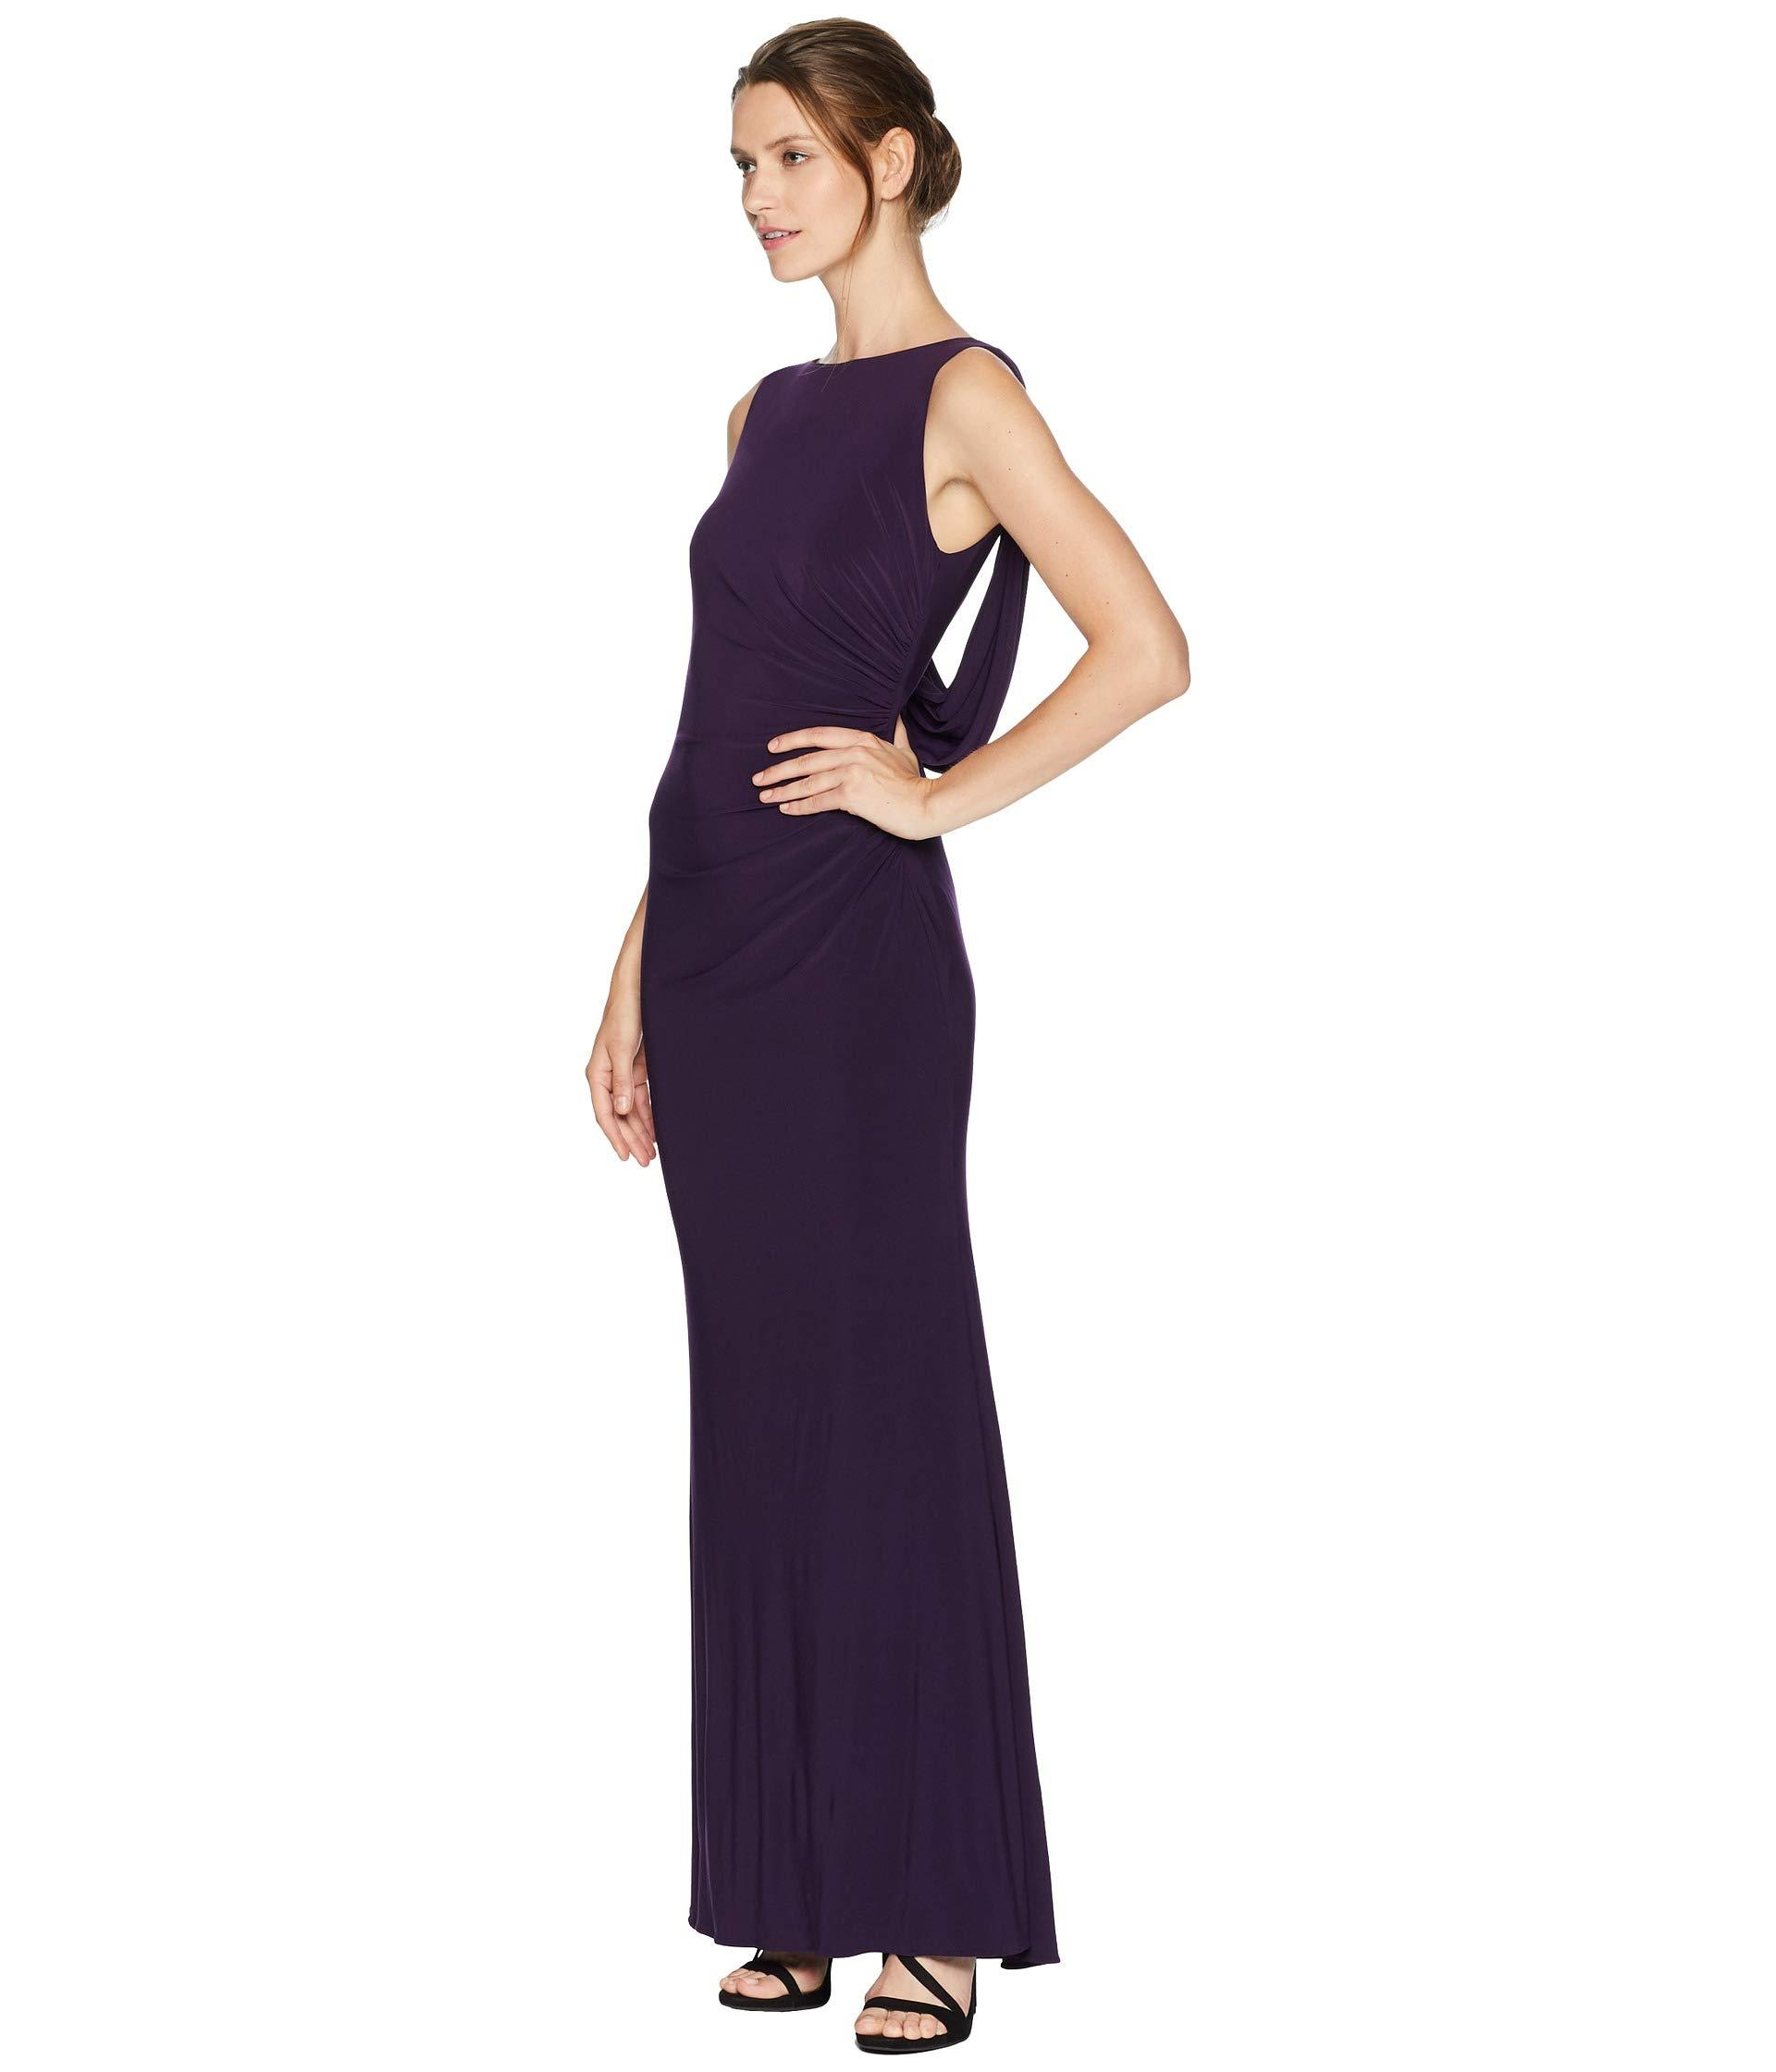 0c945896e175 Adrianna Papell Side Draped Jersey Gown in Purple - Lyst